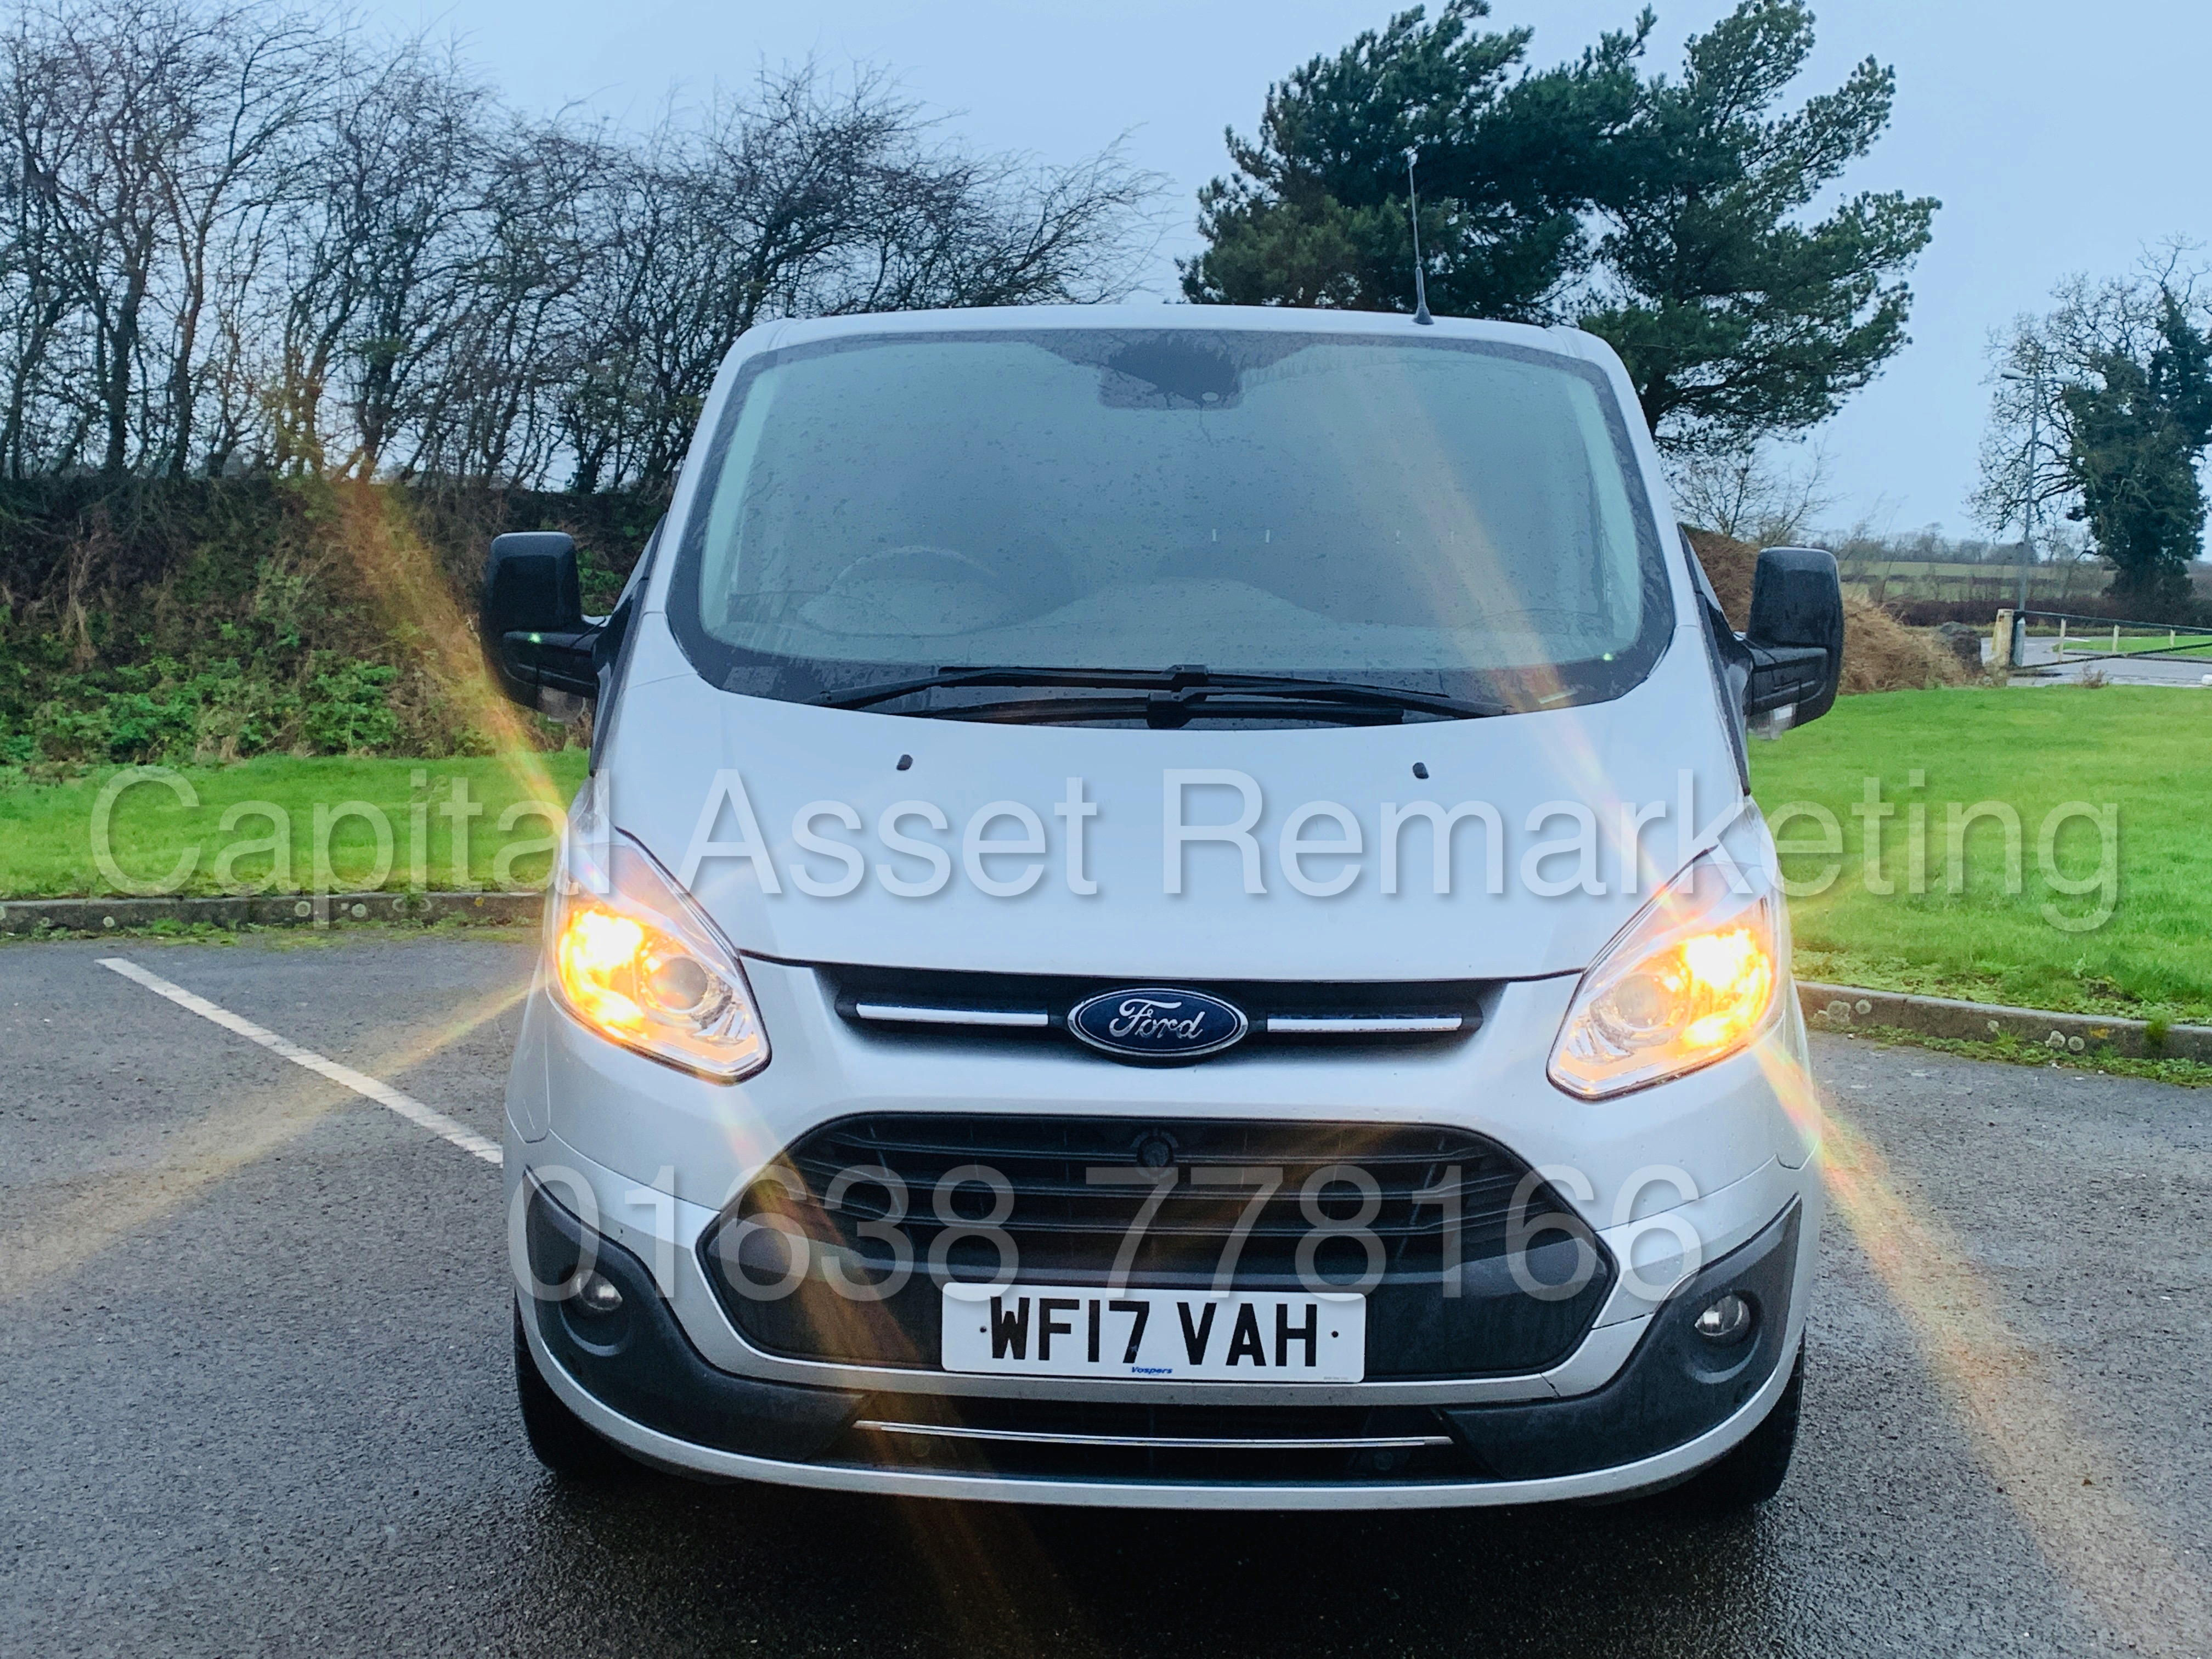 (On Sale) FORD TRANSIT *TREND* 290 SWB (2017 - EURO 6 / AD-BLUE) '2.0 TDCI - 130 BHP - 6 SPEED' - Image 4 of 41